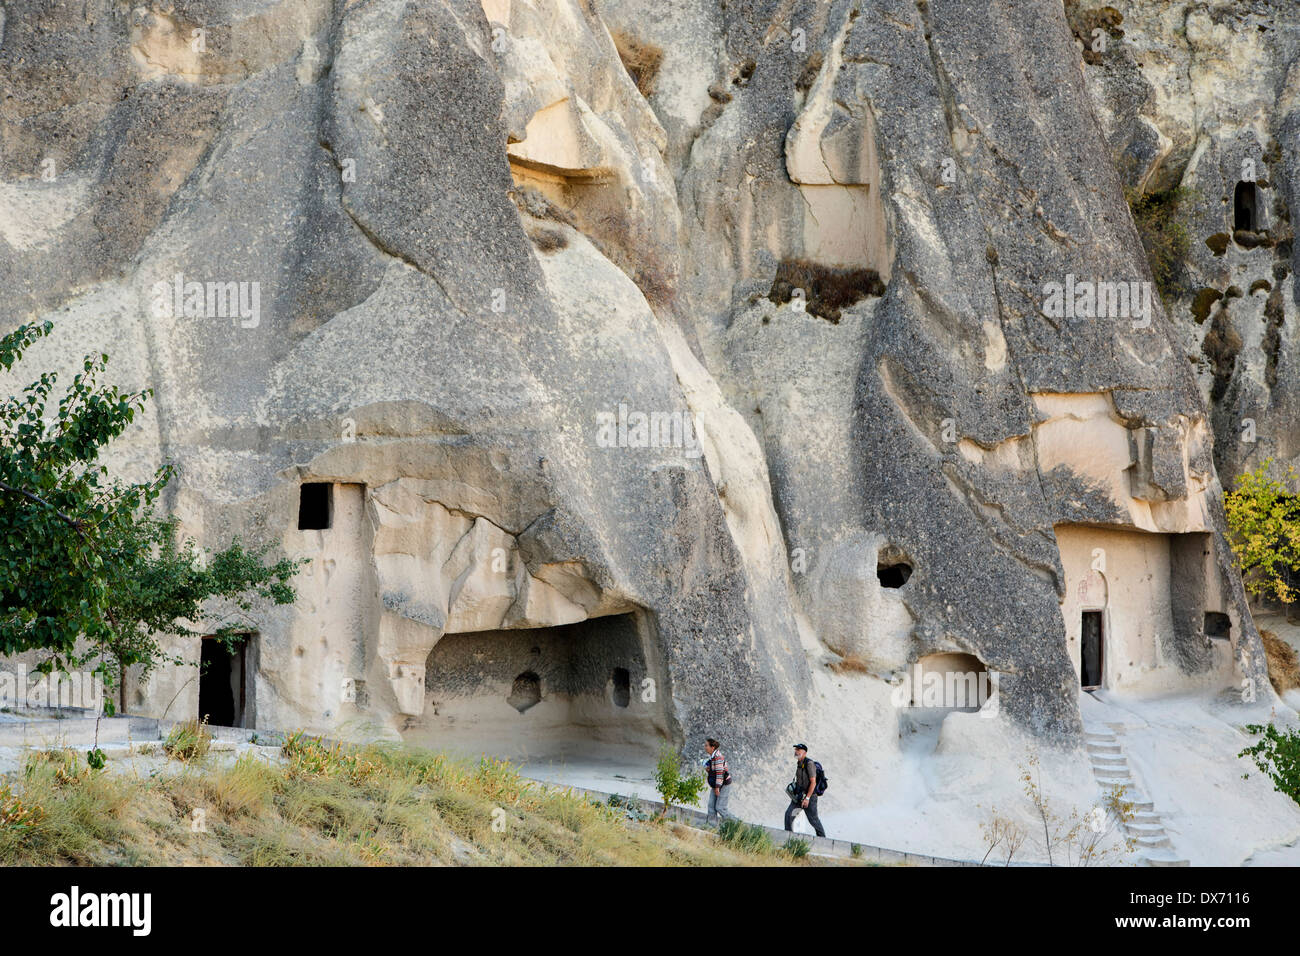 Visitors in front of portion of church complex, Goreme Open Air Museum, Goreme, Cappadocia, Turkey - Stock Image